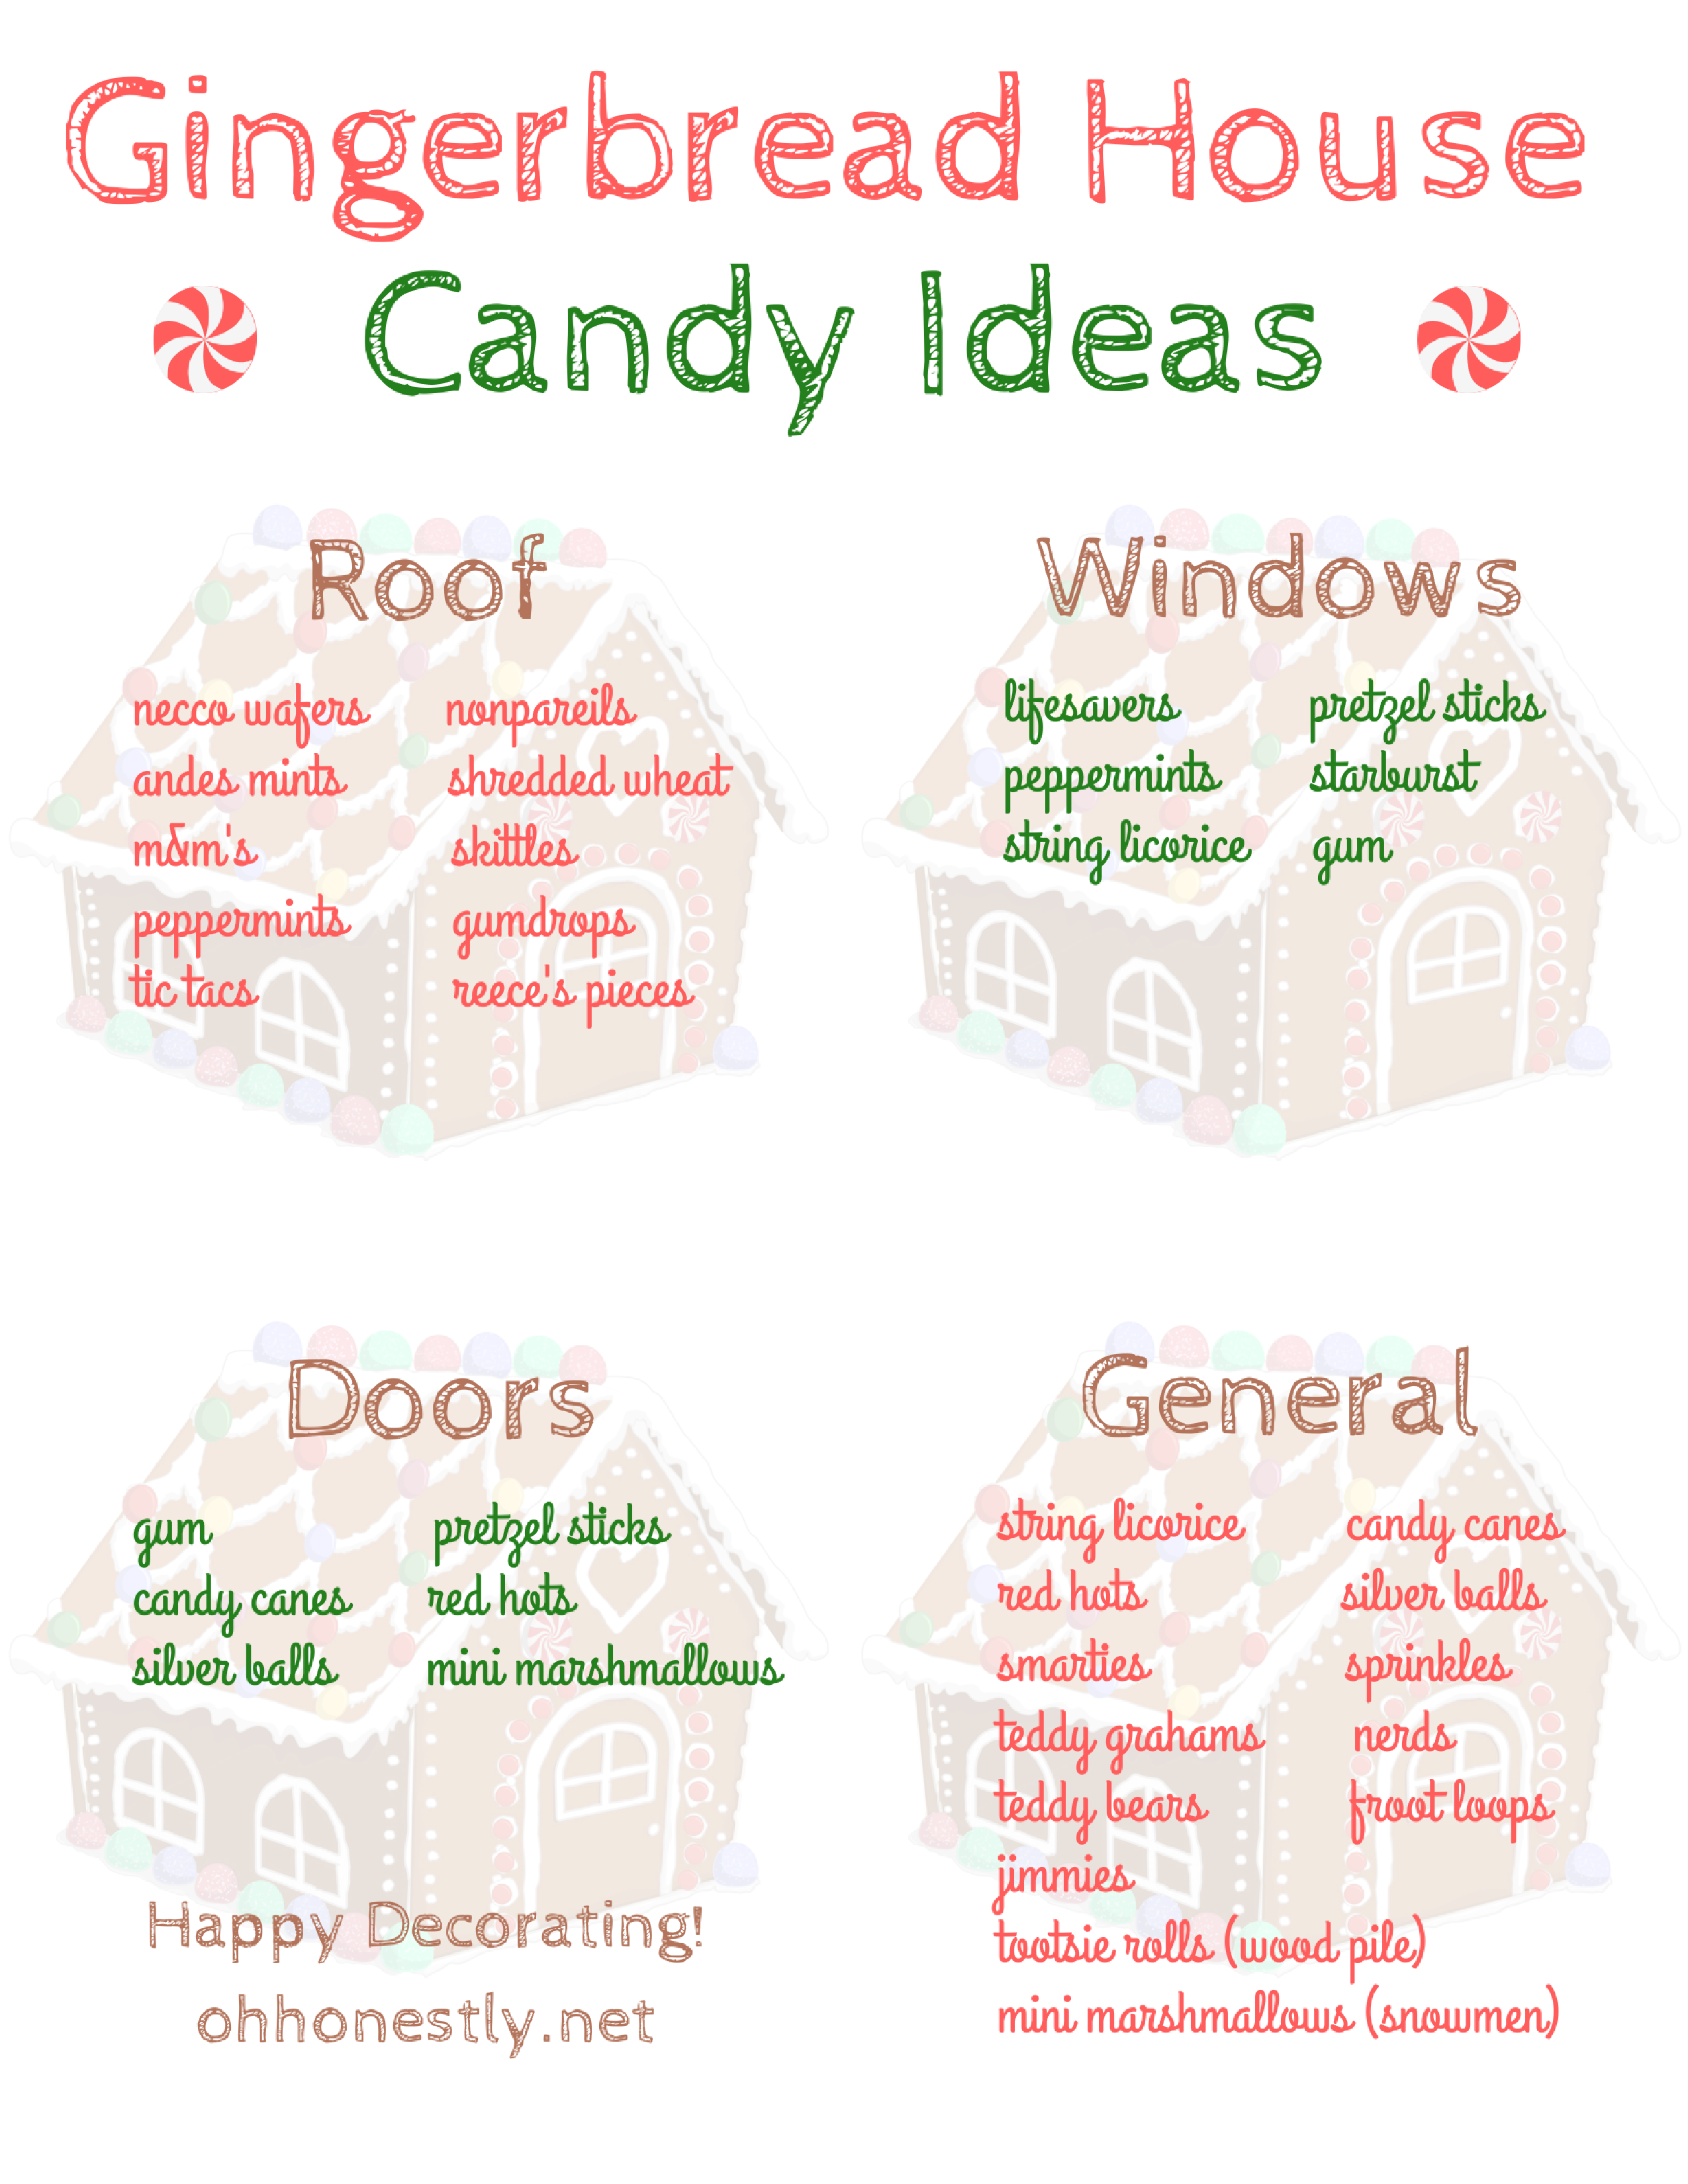 How to Decorate a Gingerbread House plus free printable